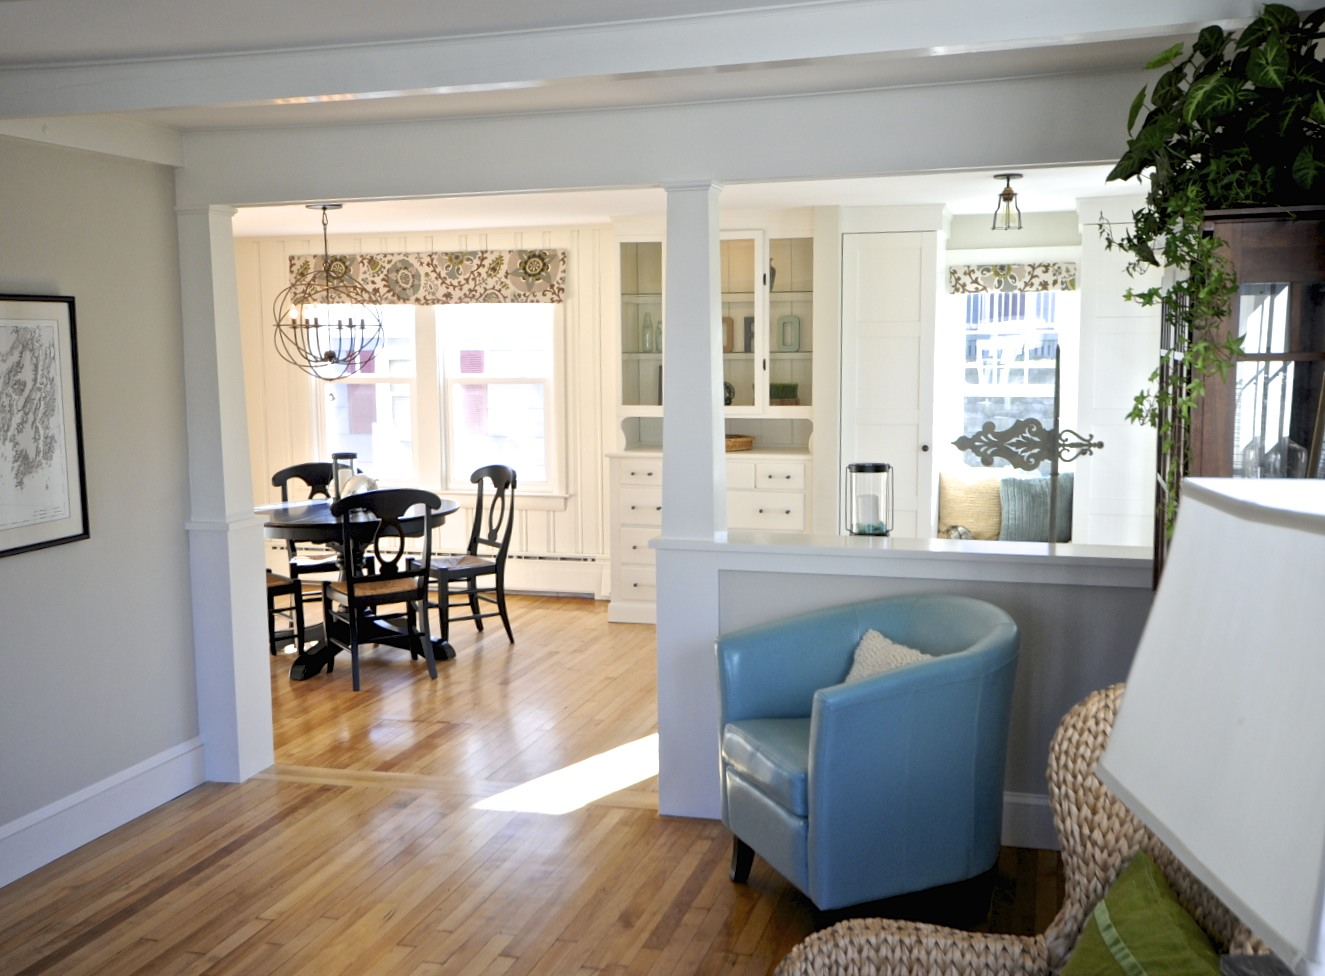 Kitchen Dining Room Knock Through Islands